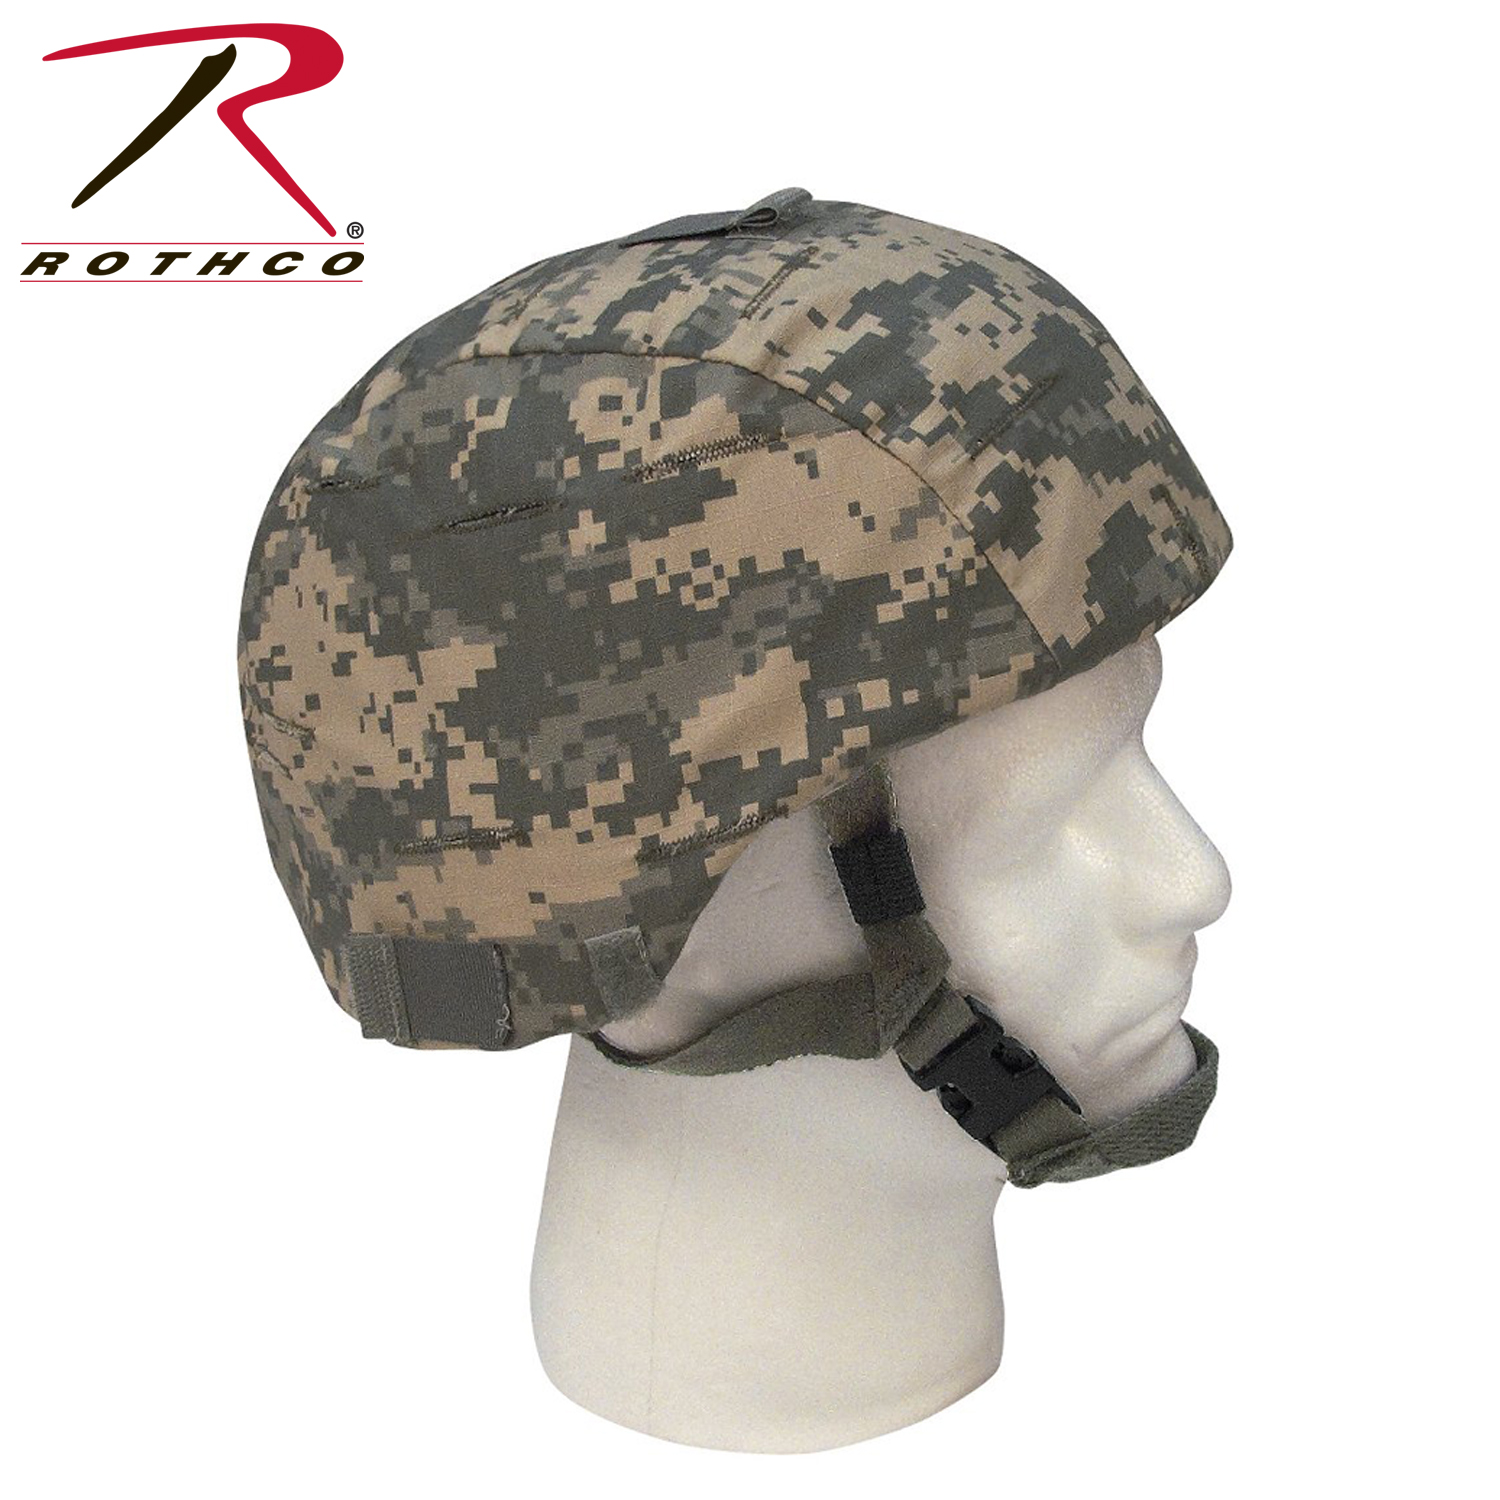 2e55afdcd4cd Rothco G.I. Type Camouflage MICH Helmet Covers